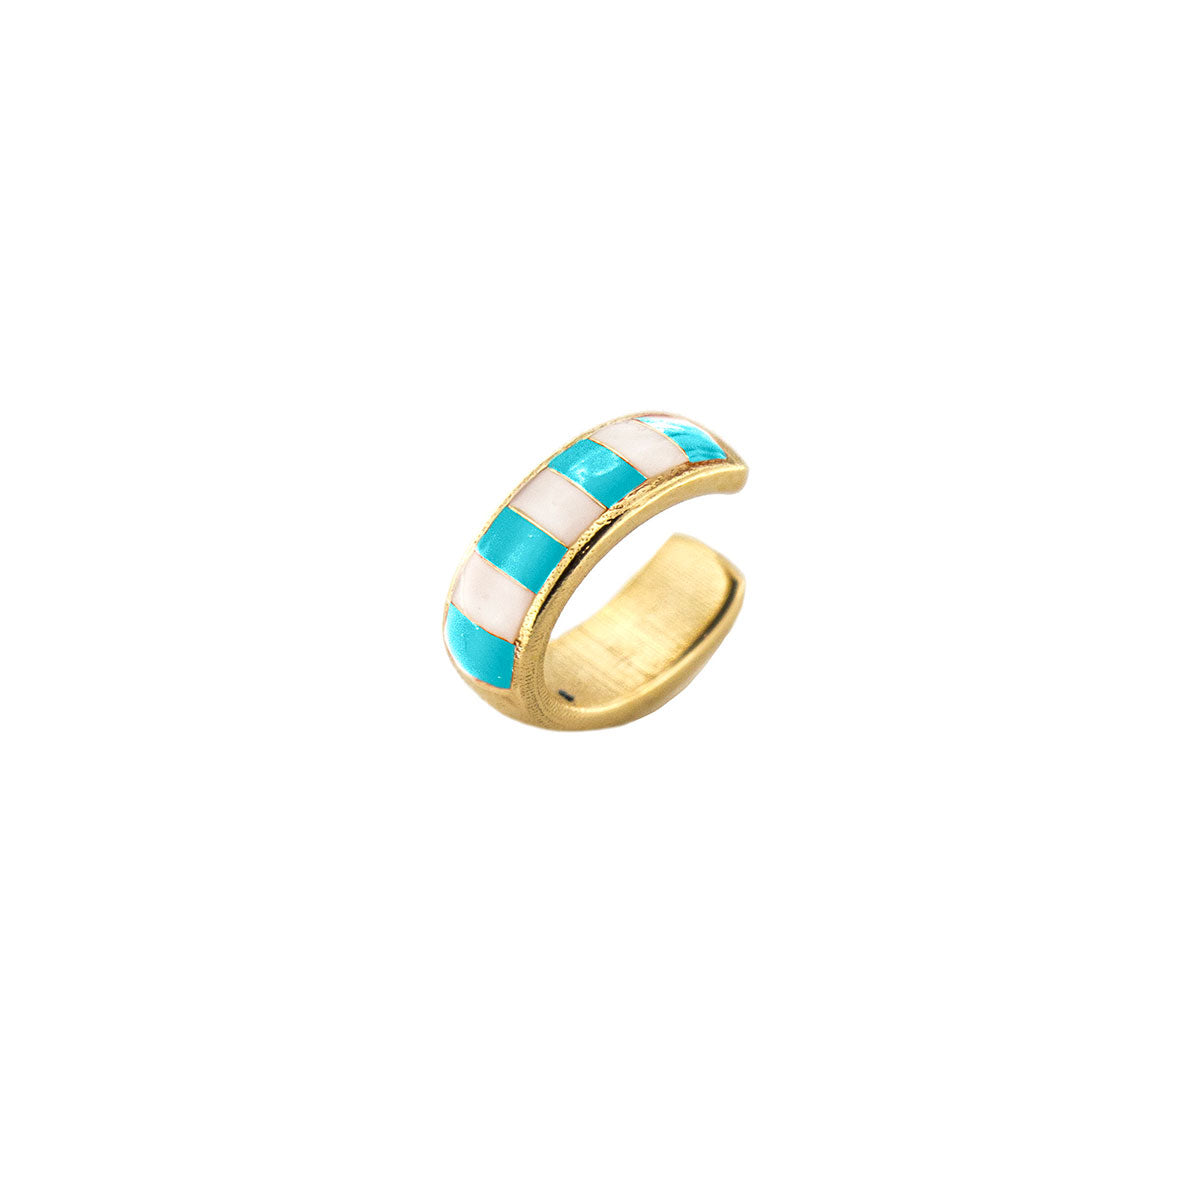 Earcuff enameled with turquoise stripes